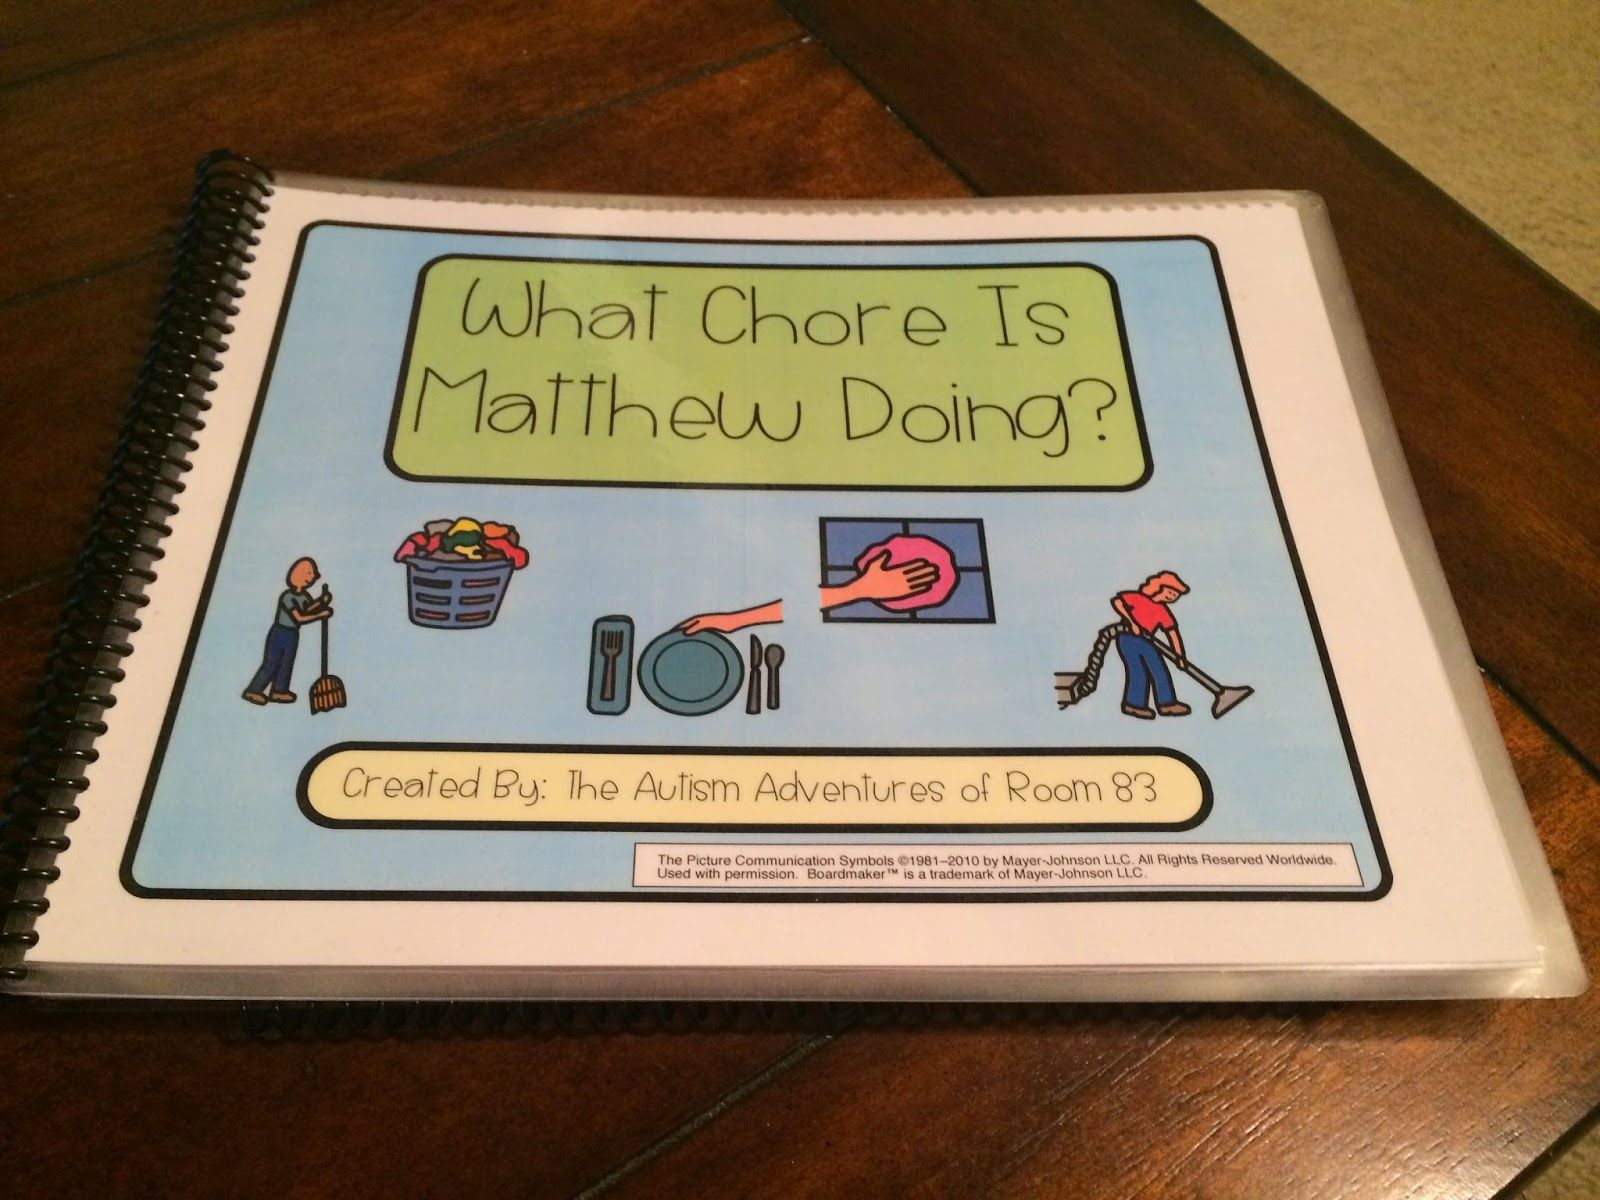 Adapted book for students with autism- What chore is matthew doing.  Adapted book to work on vocational skills and daily household chores using board maker pecs